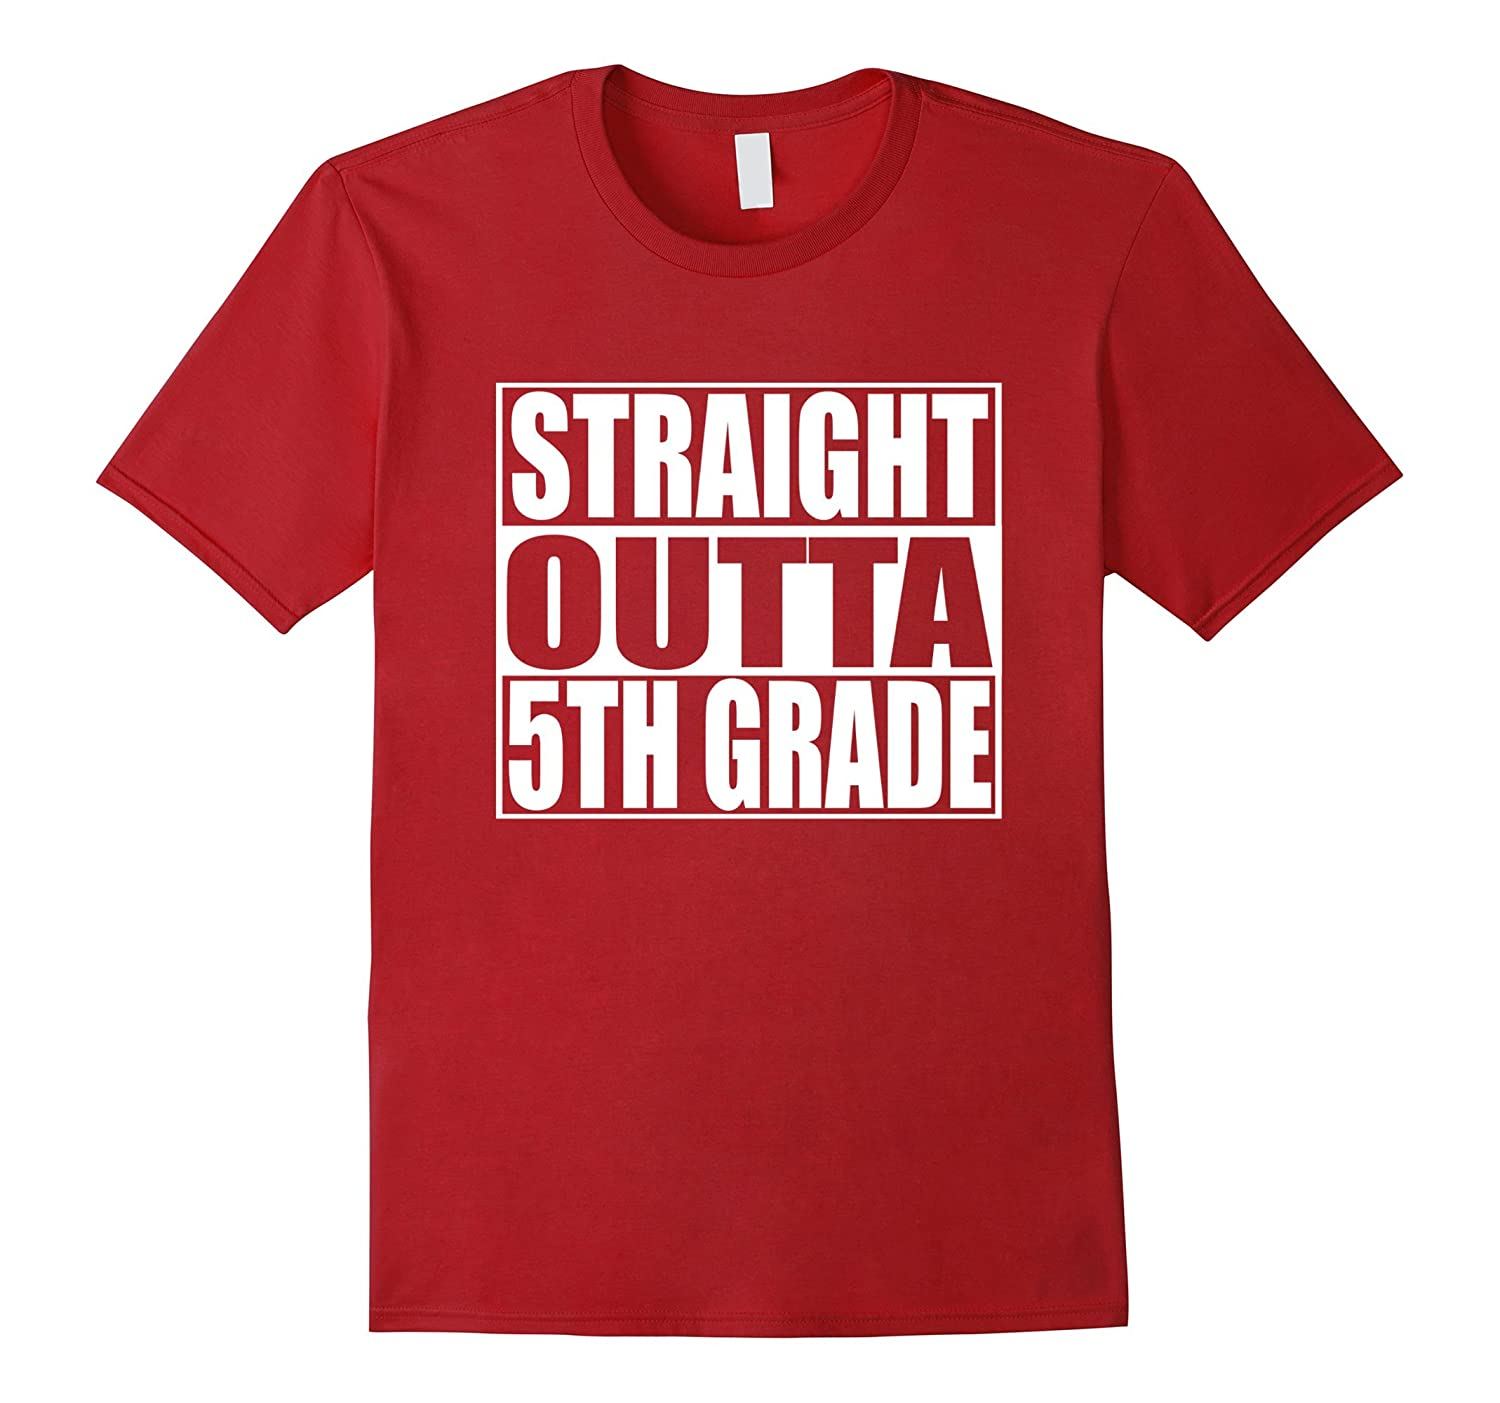 Funny FIfth Grade Shirt – STRAIGHT OUTTA 5TH GRADE T-Shirt